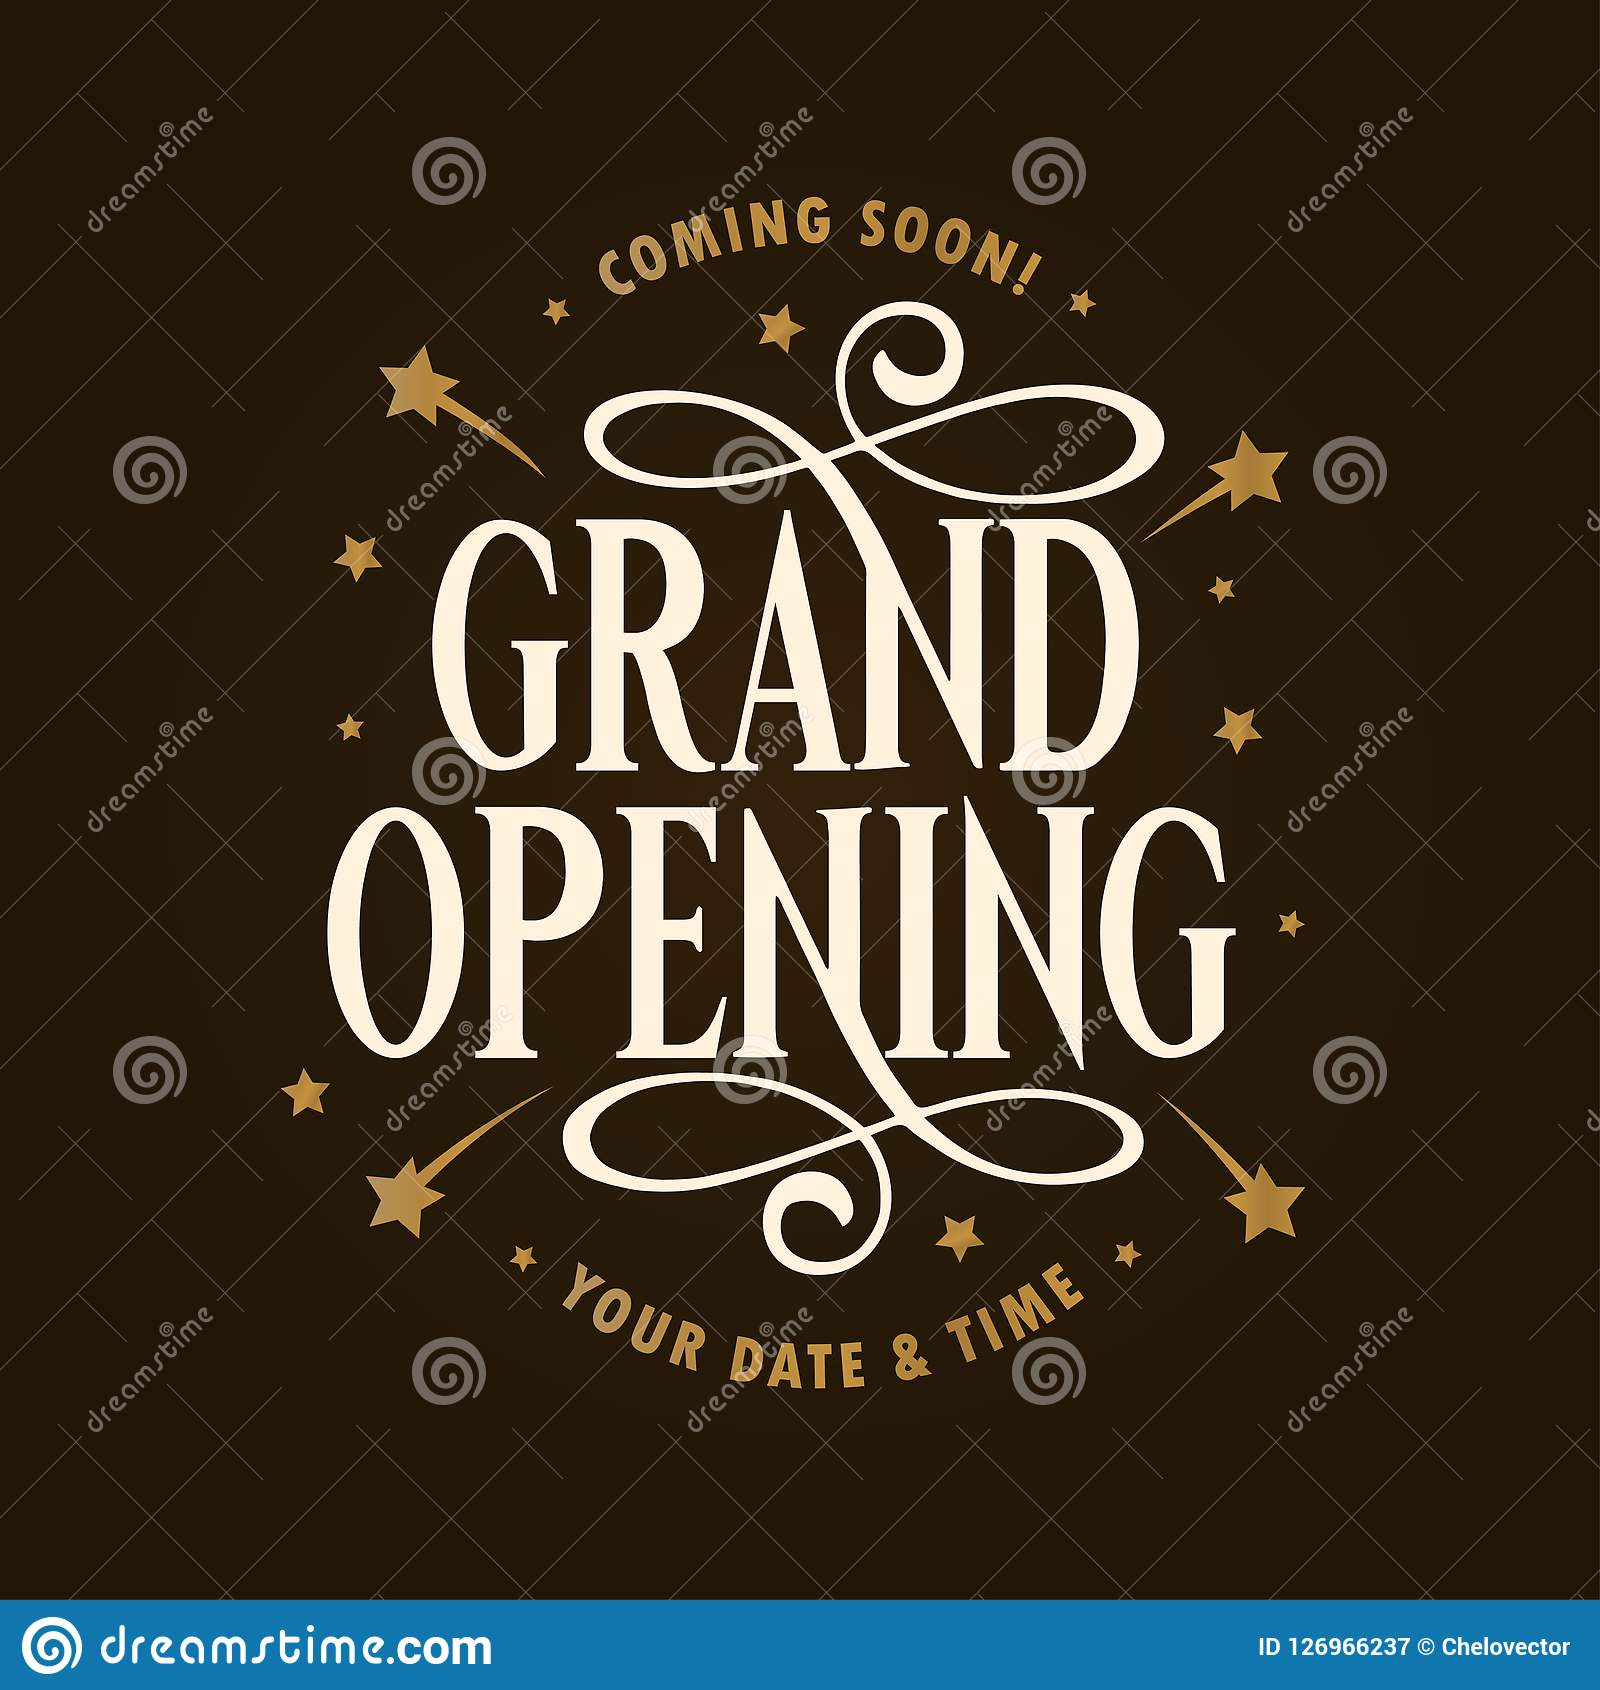 grand opening template banner poster vector vintage illustration